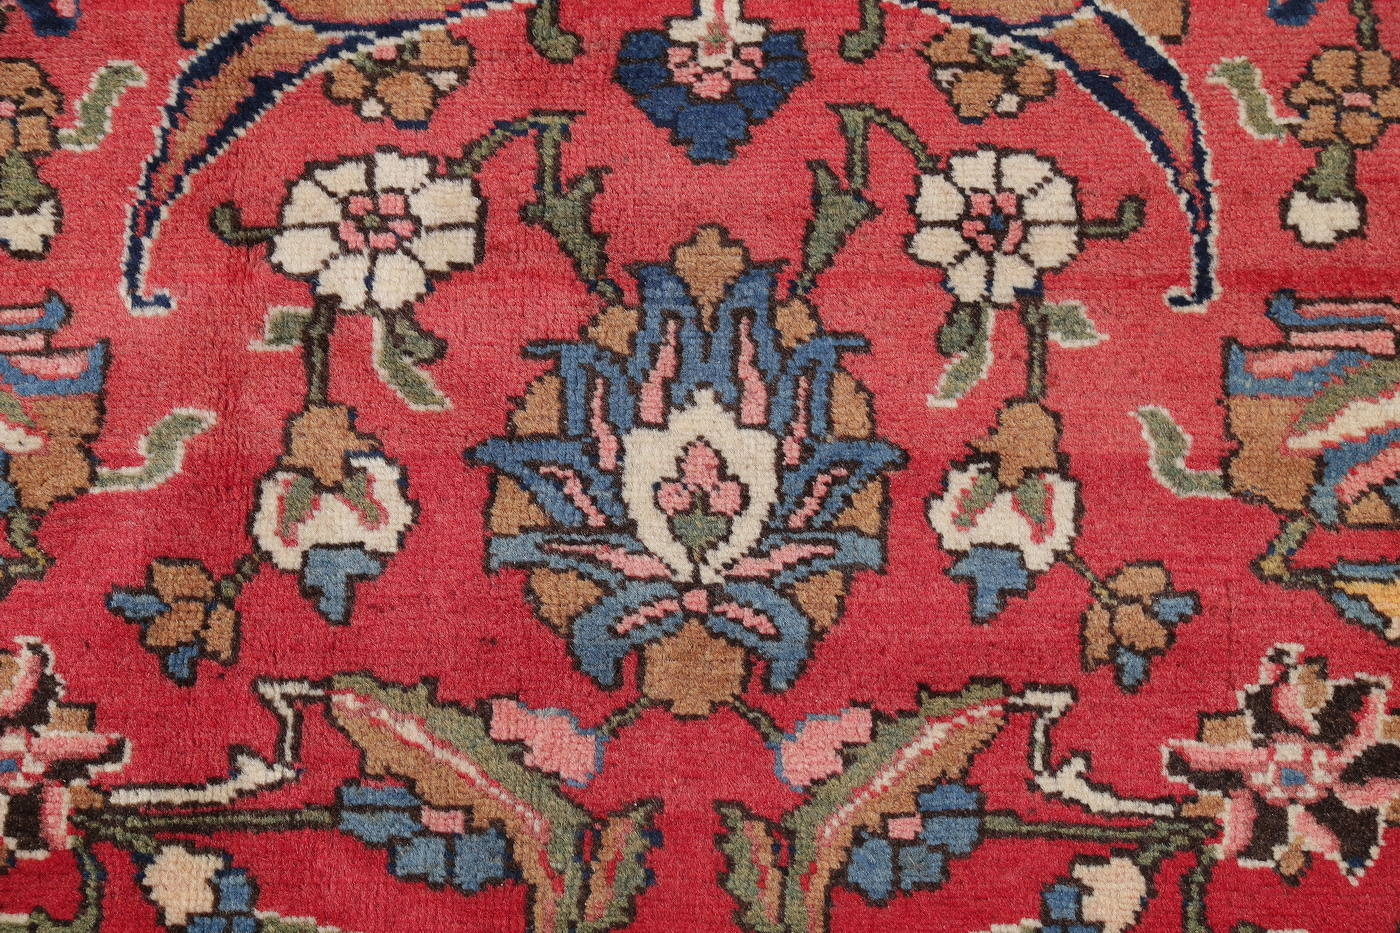 Antique Vegetable Dye Bakhtiari Persian Area Rug 12x14 image 11